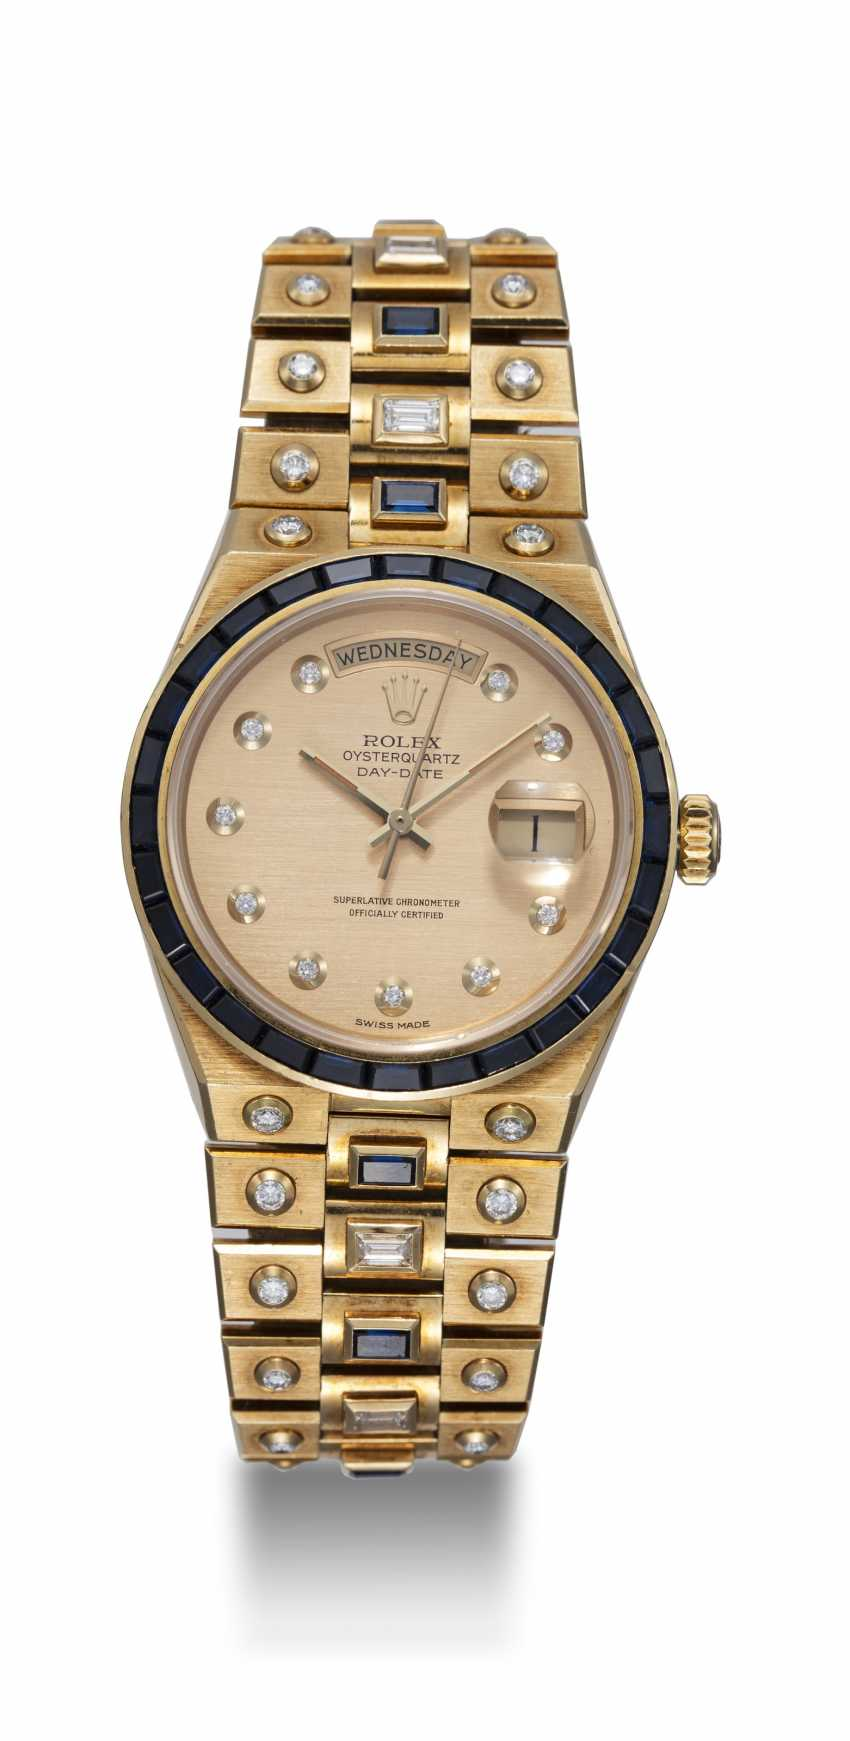 ROLEX, A YELLOW GOLD DAY-DATE OYSTERQUARTZ SET WITH DIAMONDS AND SAPPHIRES, REF: 19168 - photo 3